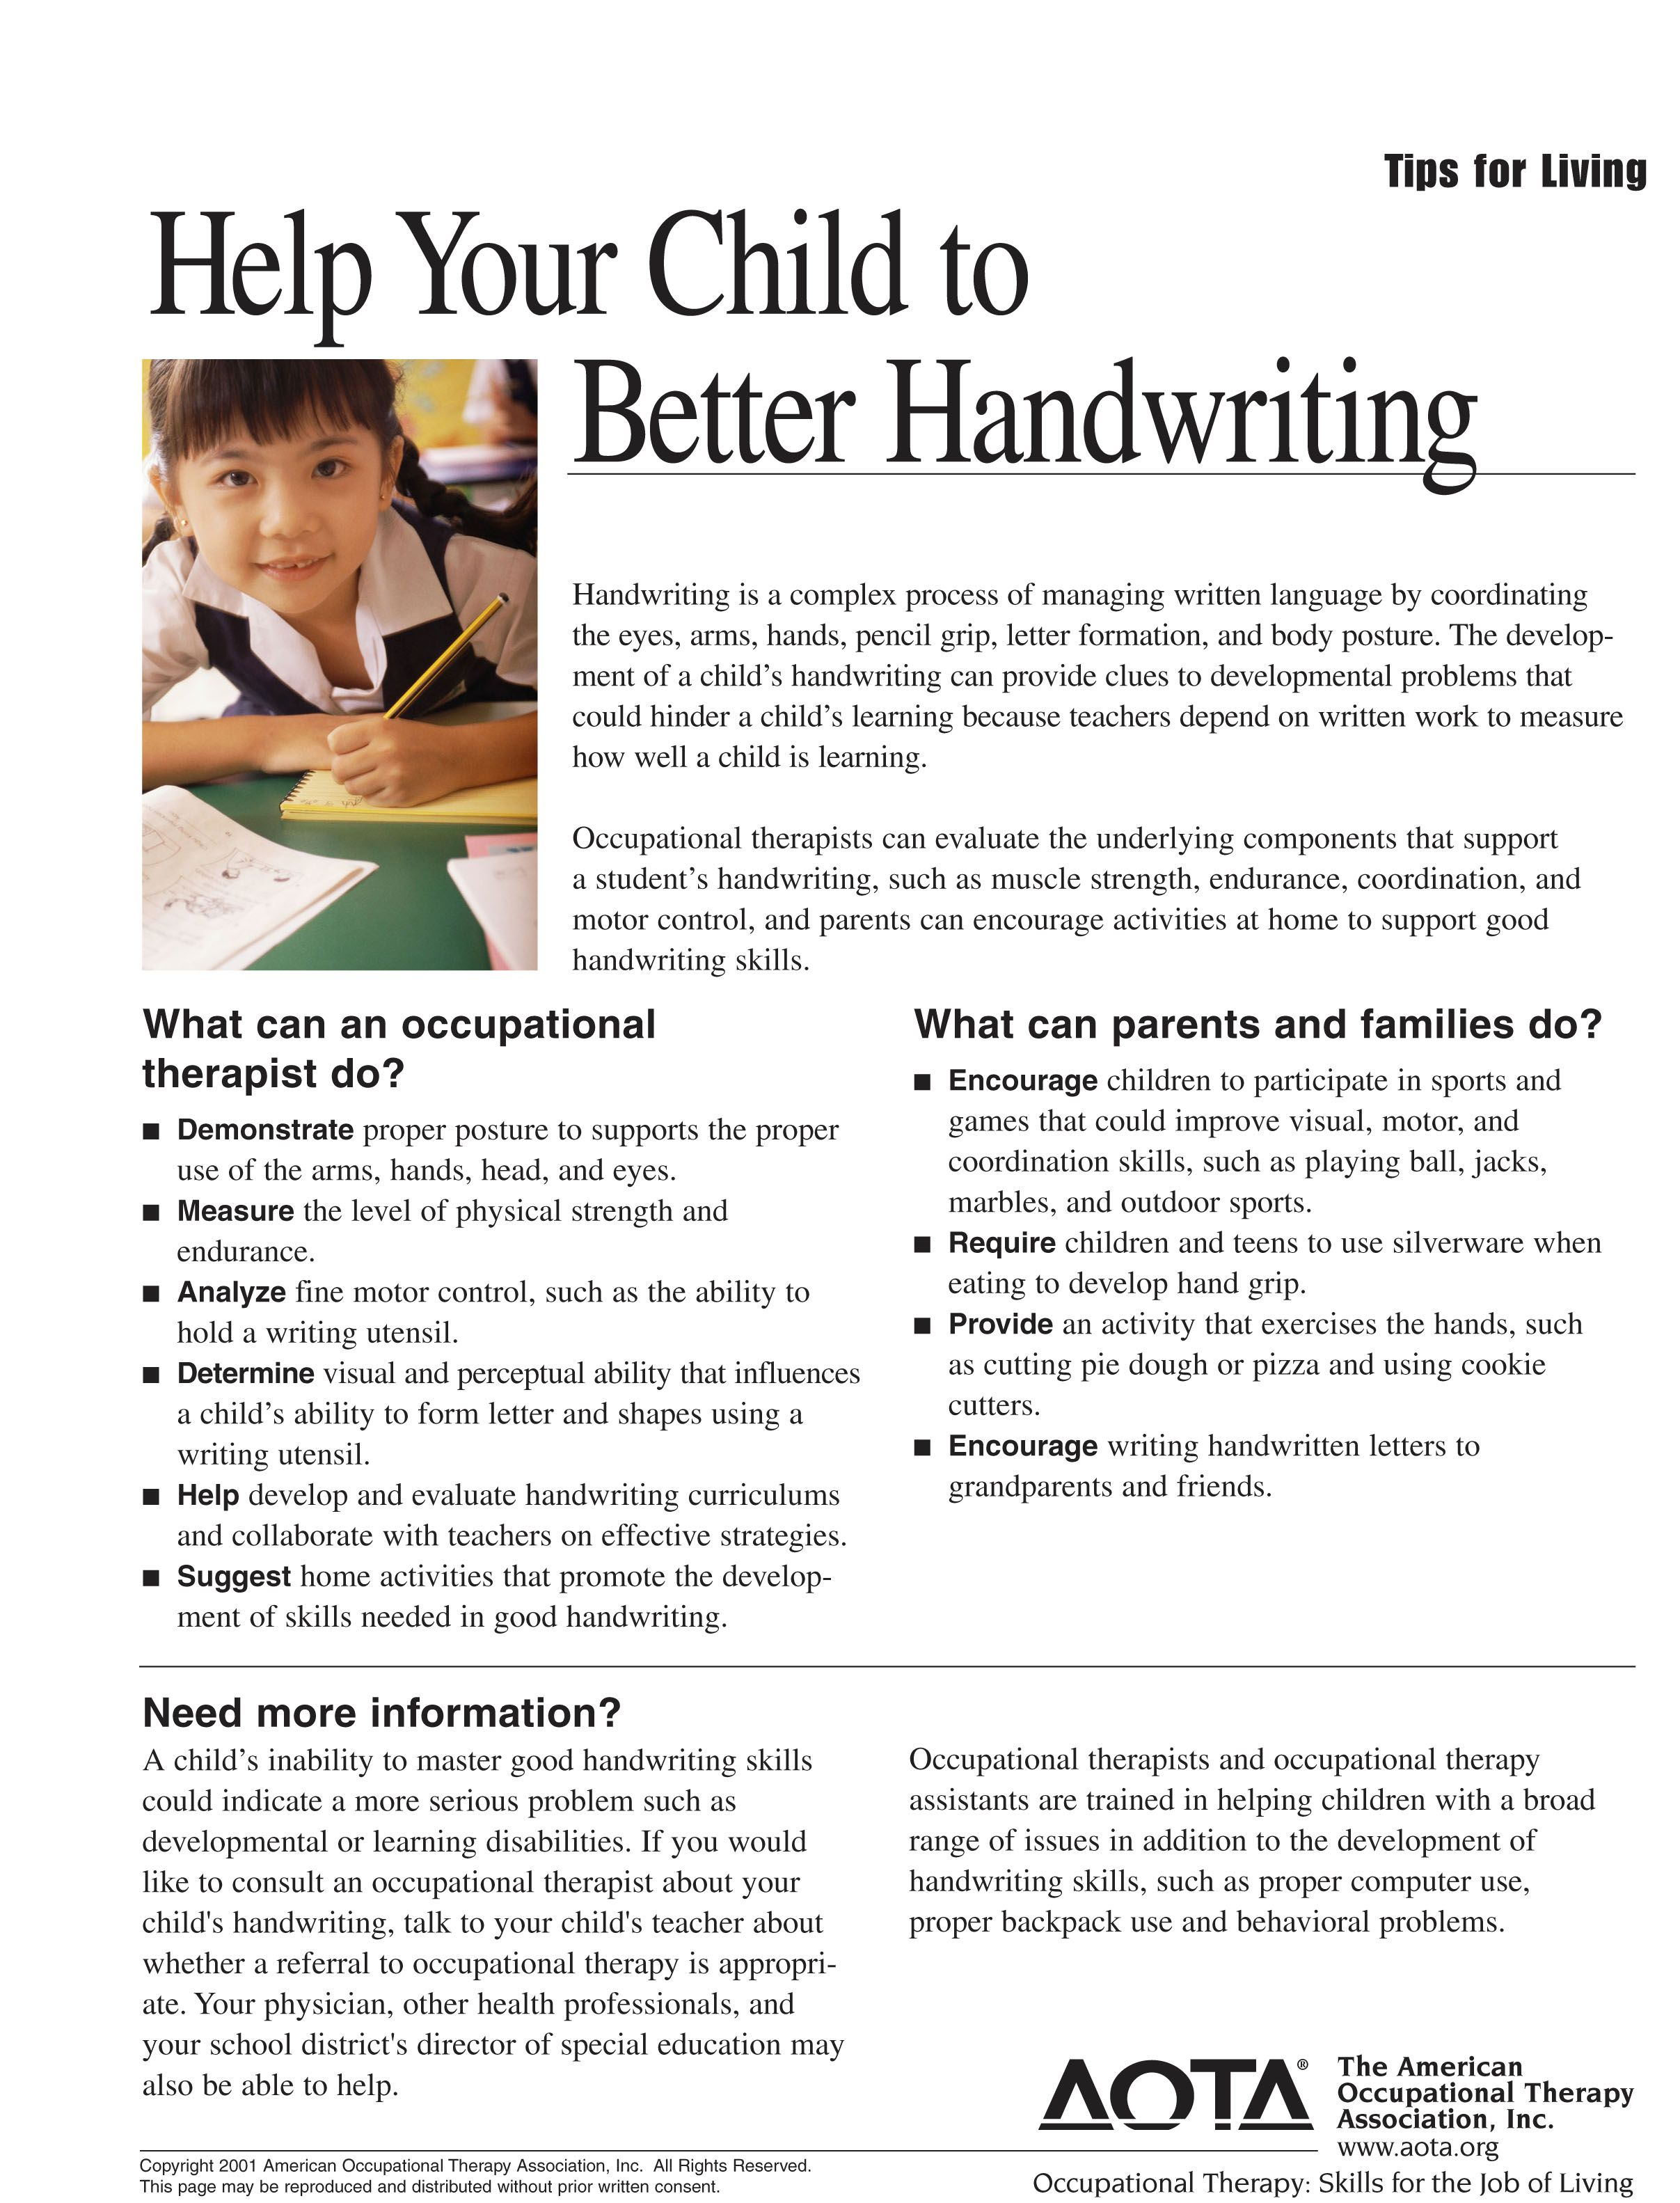 This Handwriting Worksheet Shows What Occupational